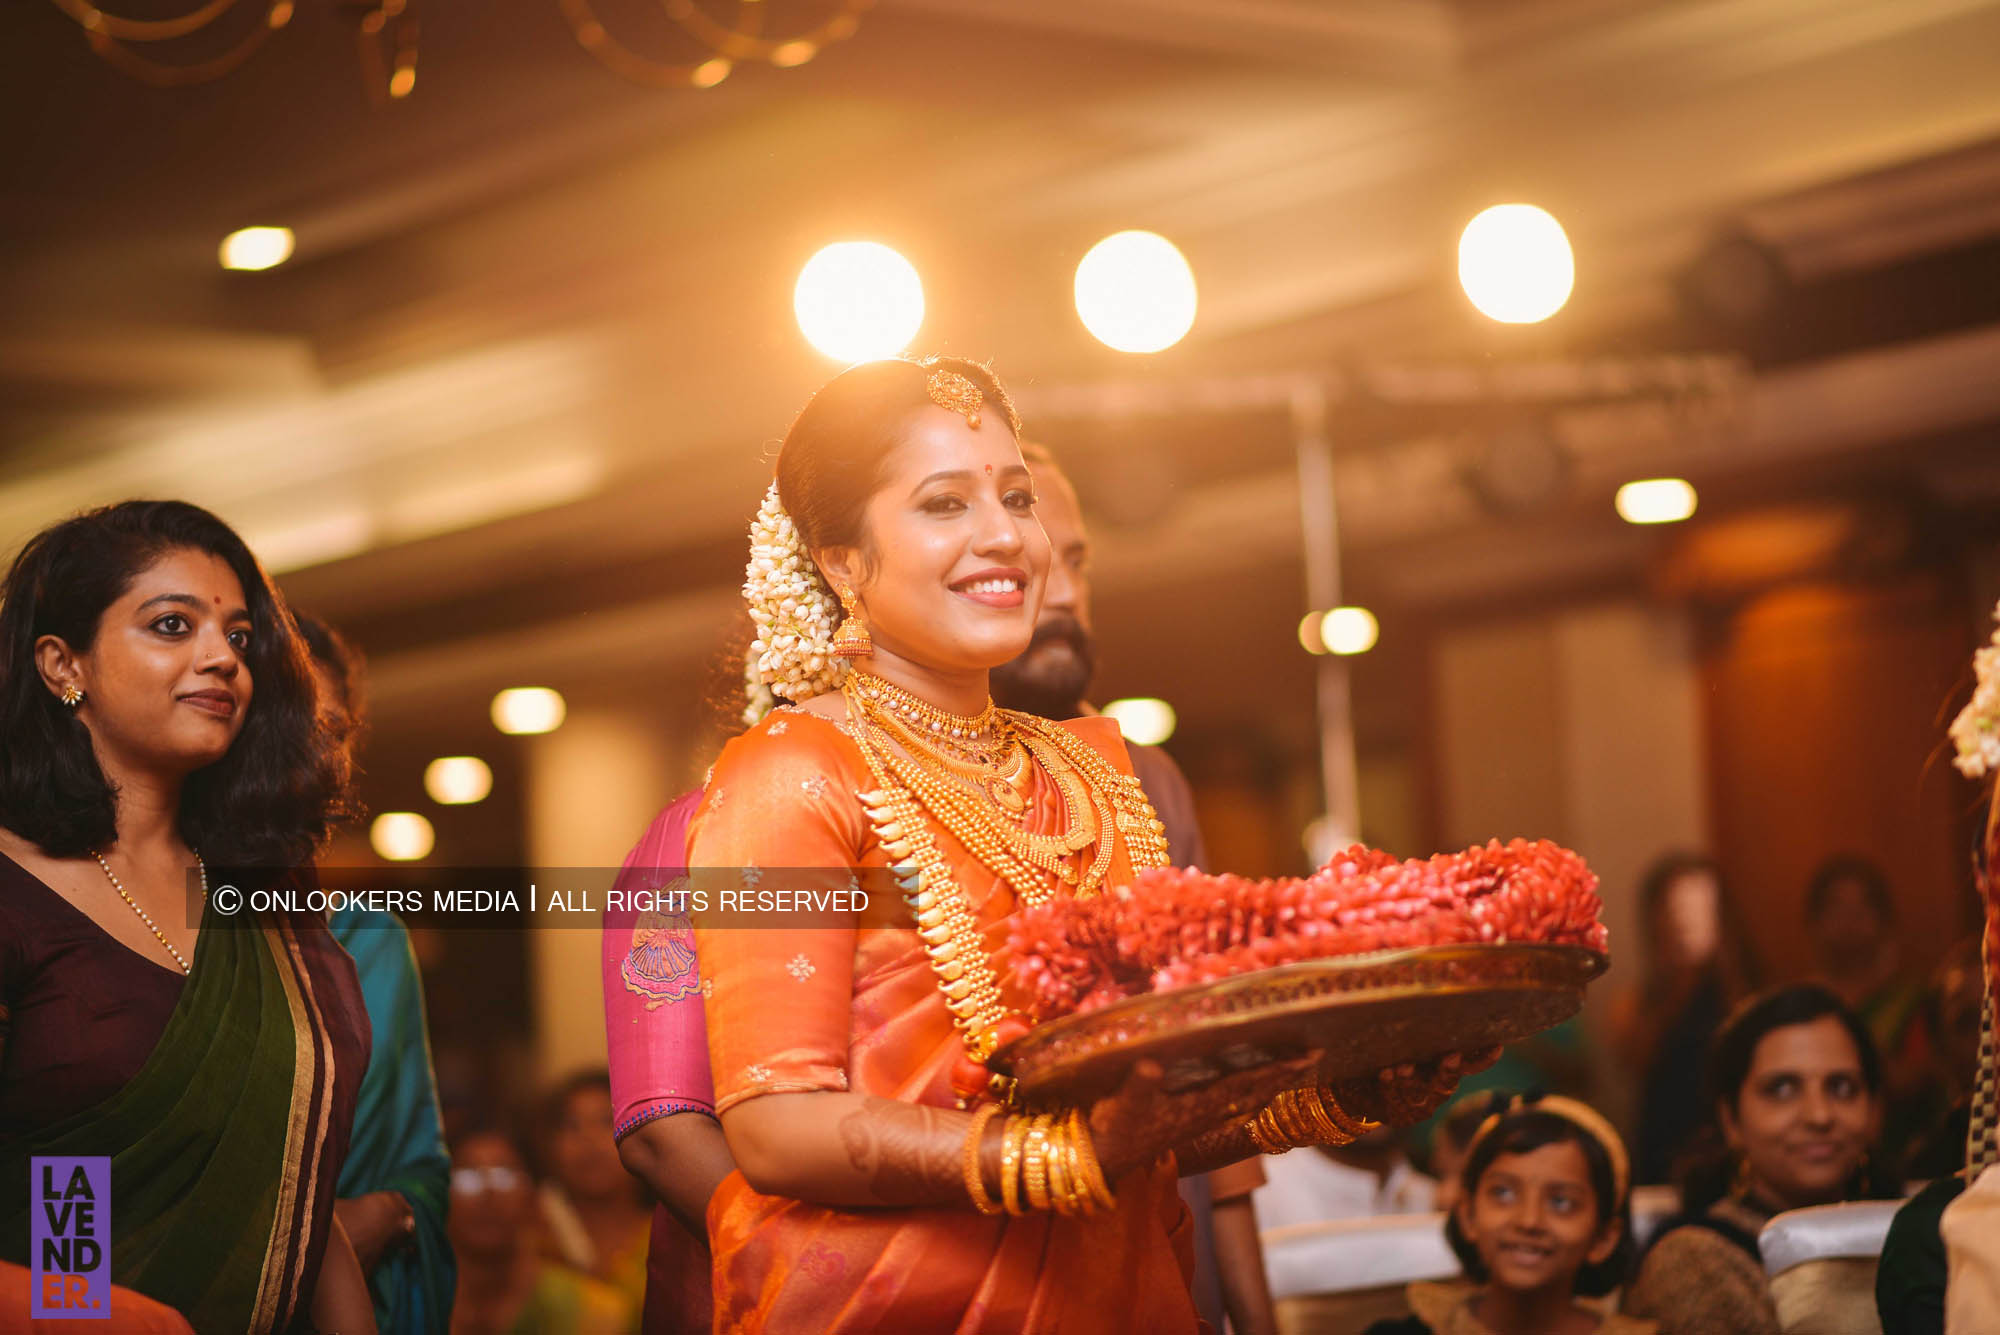 http://onlookersmedia.in/wp-content/uploads/2018/05/sreejith-vijay-wedding-stills-images-37.jpg